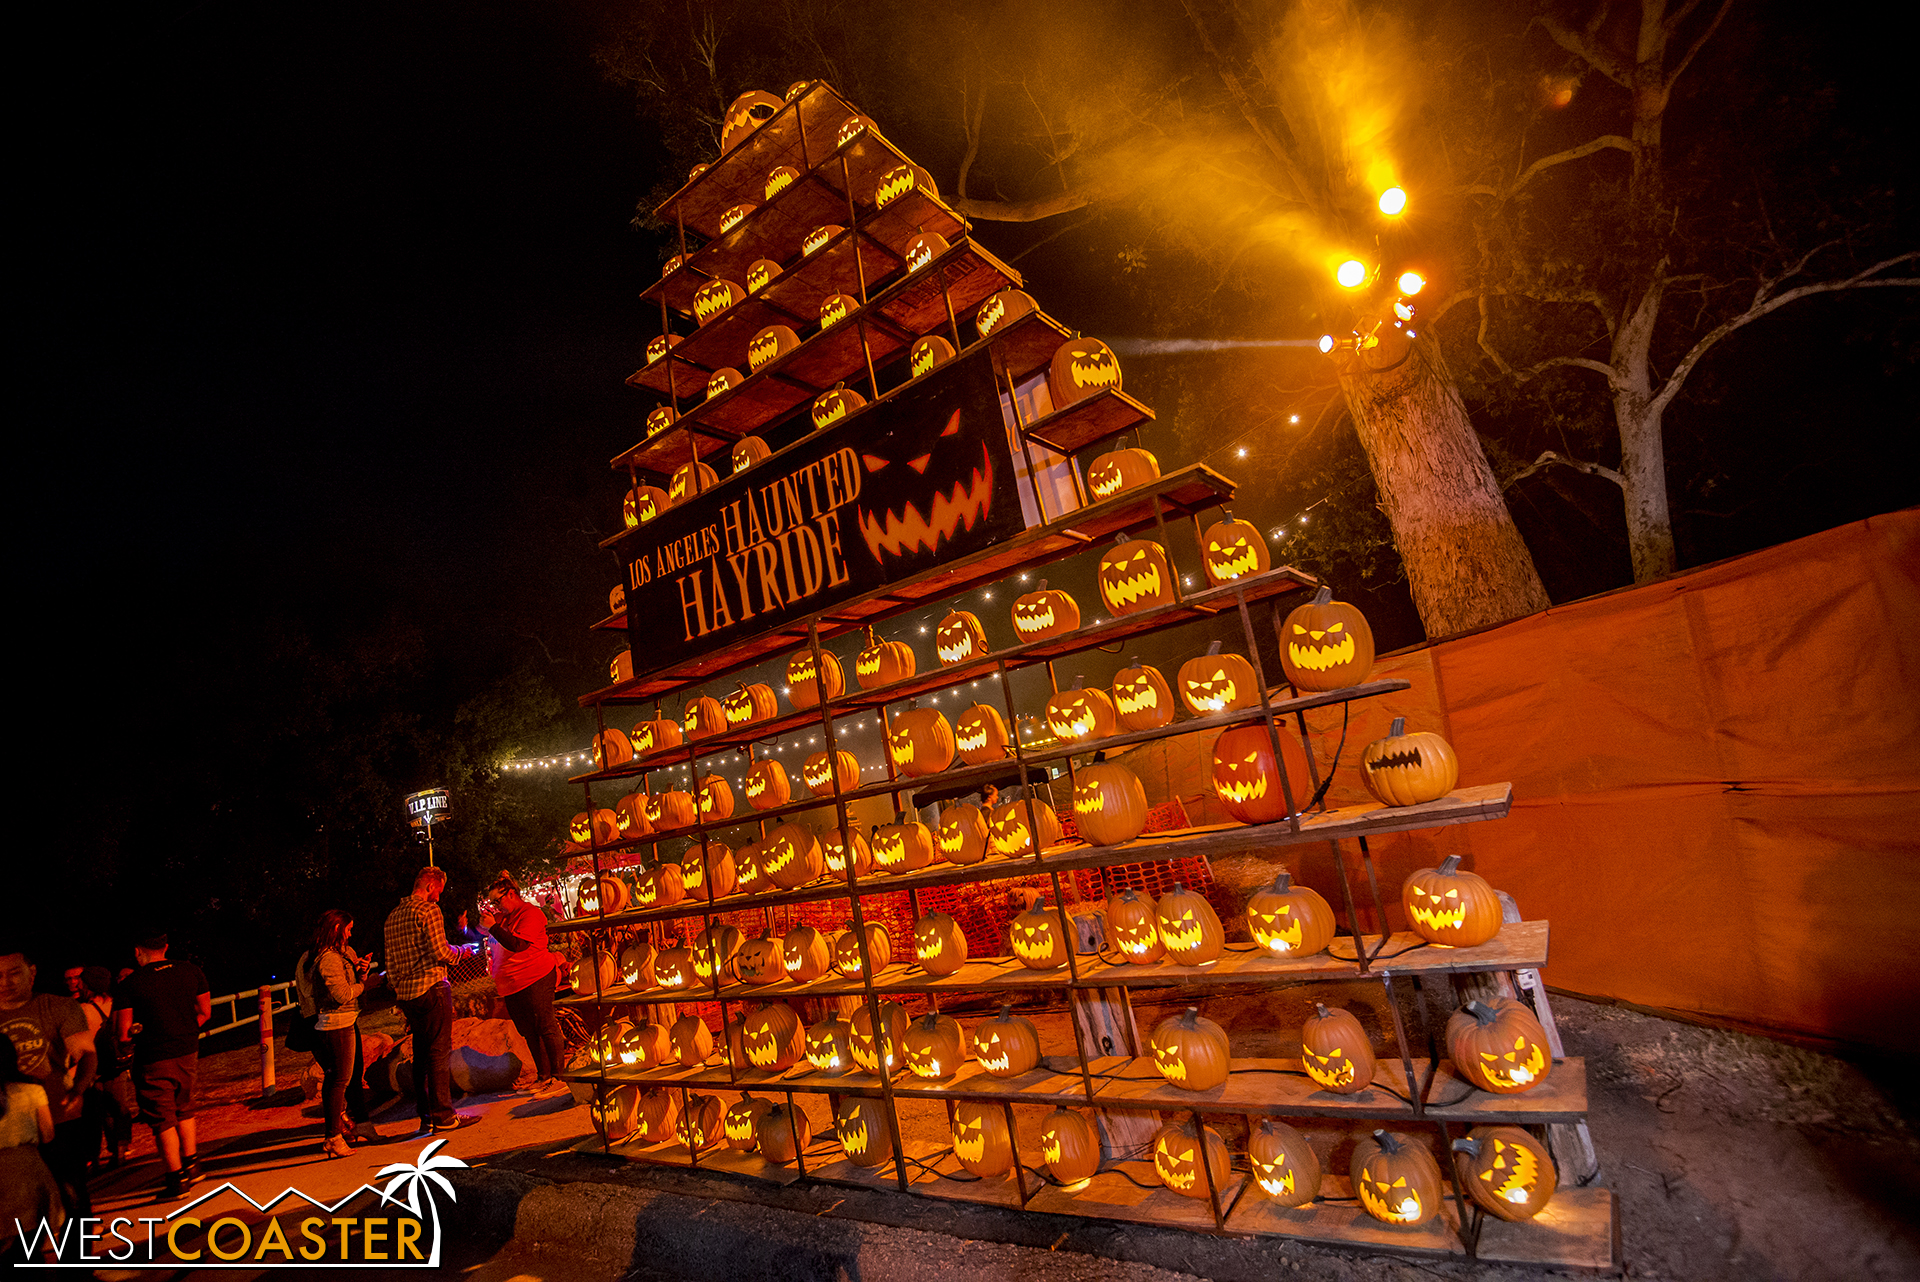 The impressive tower of jack-o-lanterns is still at the Haunted Hayride.